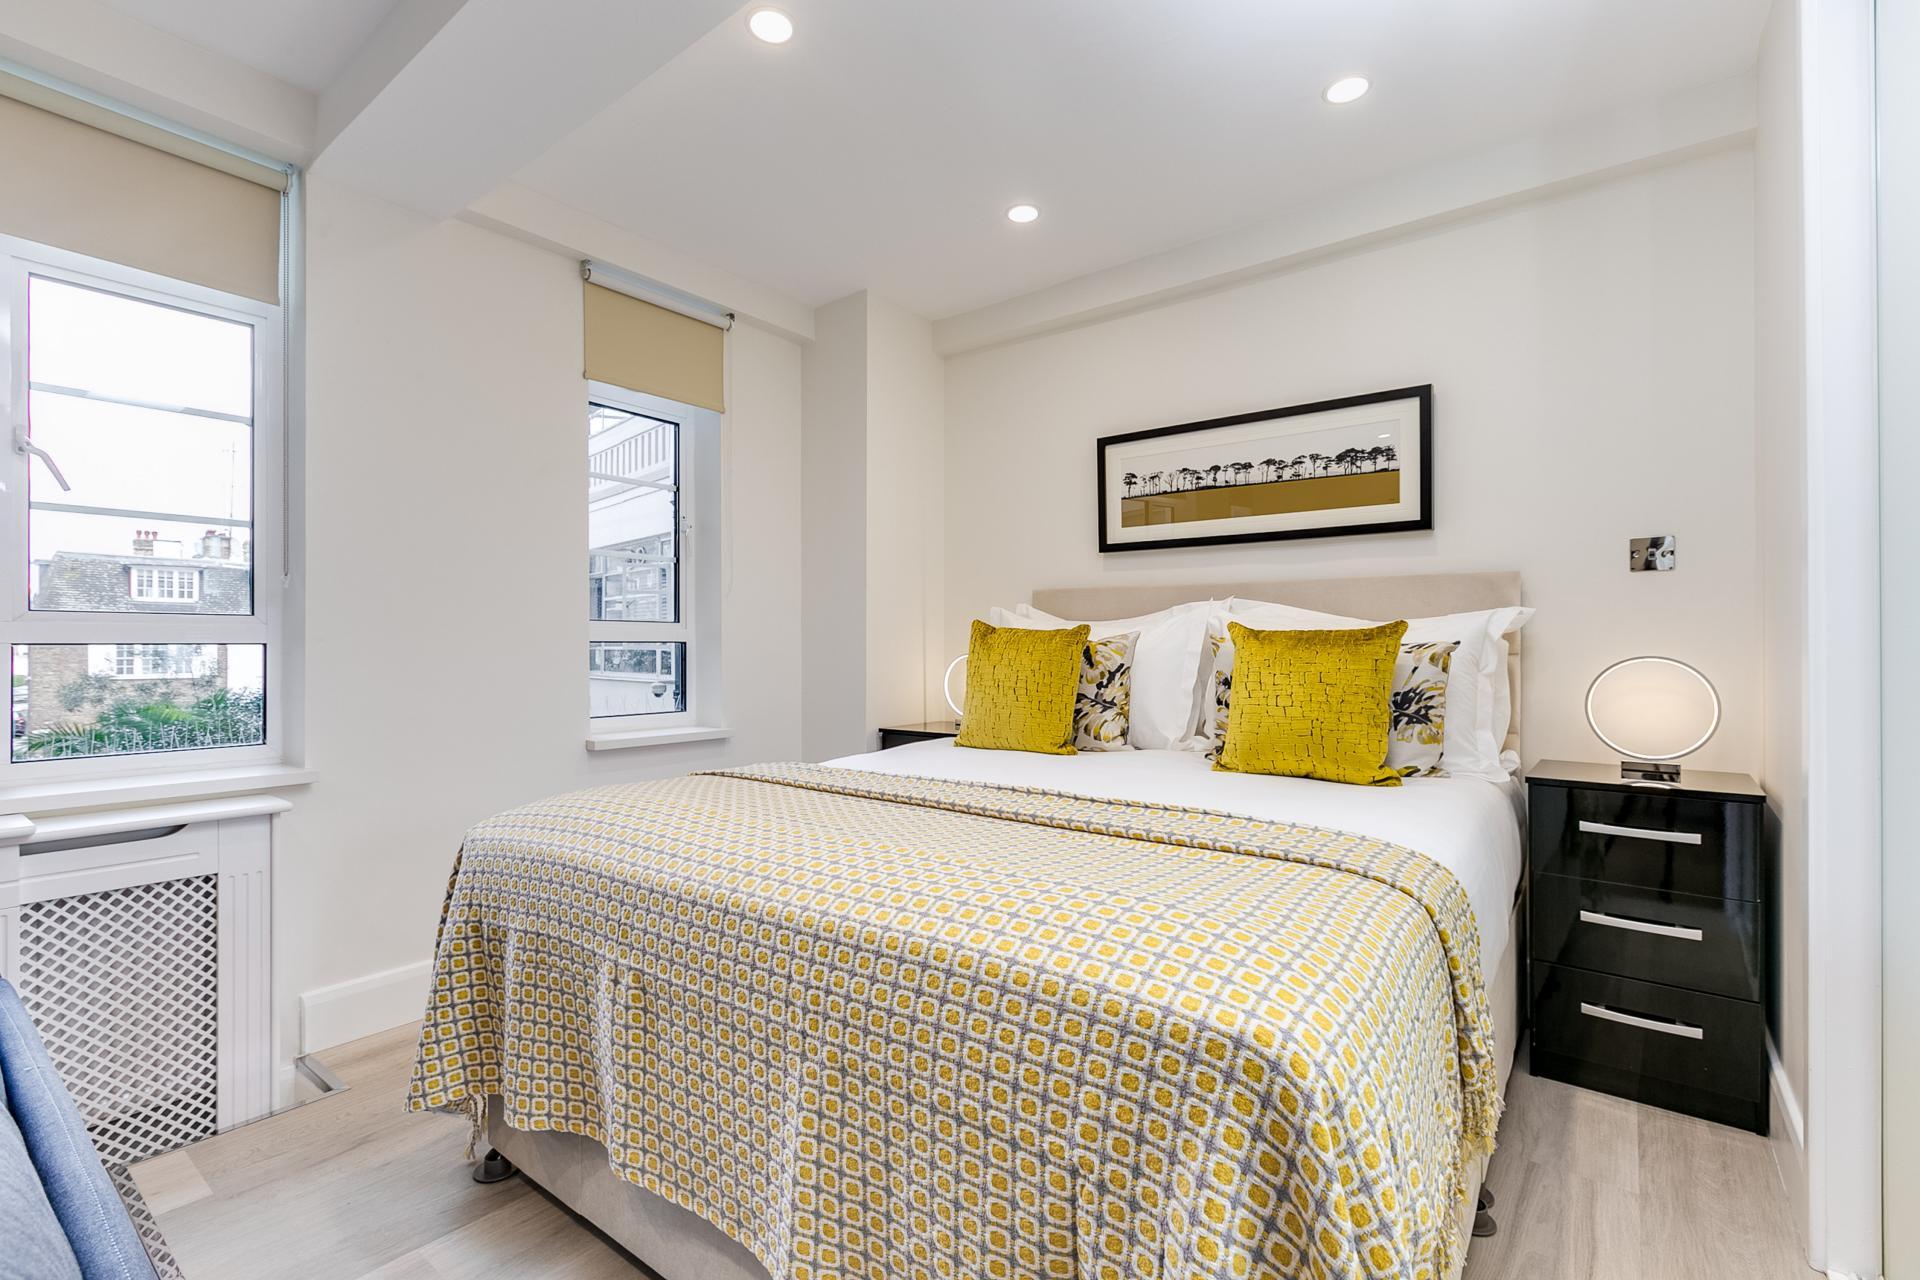 Bedroom at Nell Gwynn Chelsea Accommodation, Chelsea, London - Citybase Apartments